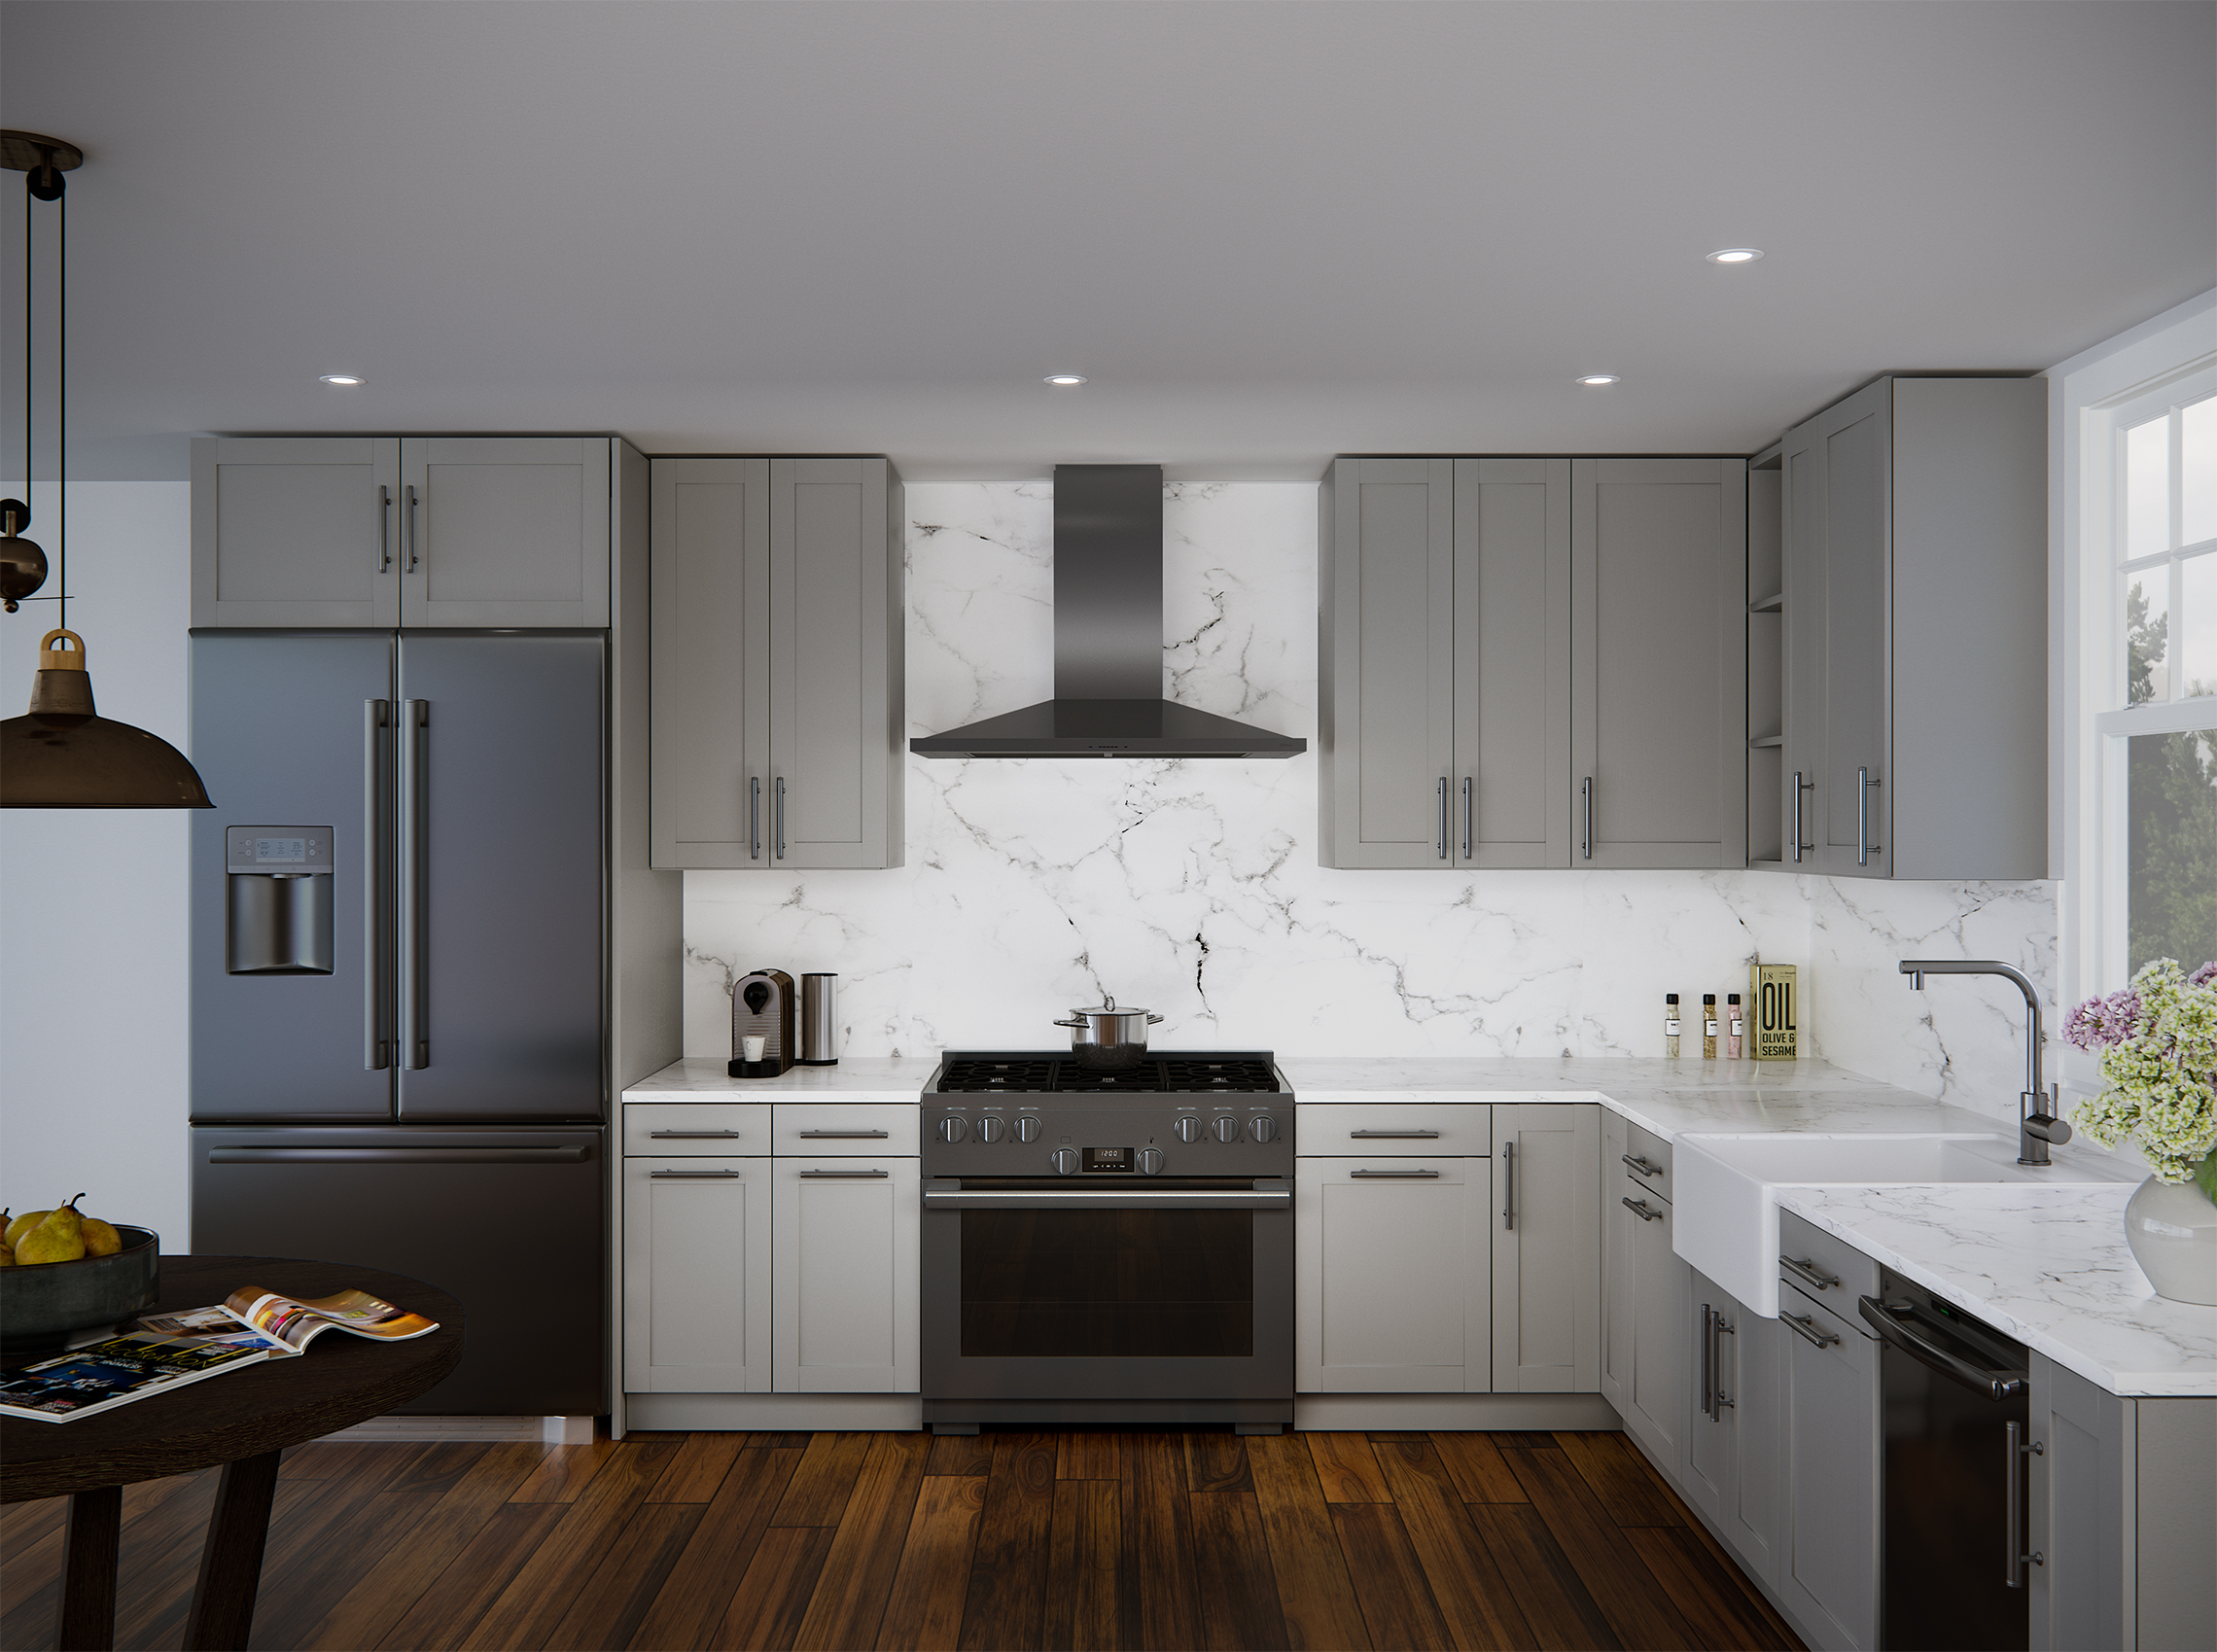 Zephyr Introduces Industry First Black Stainless Steel